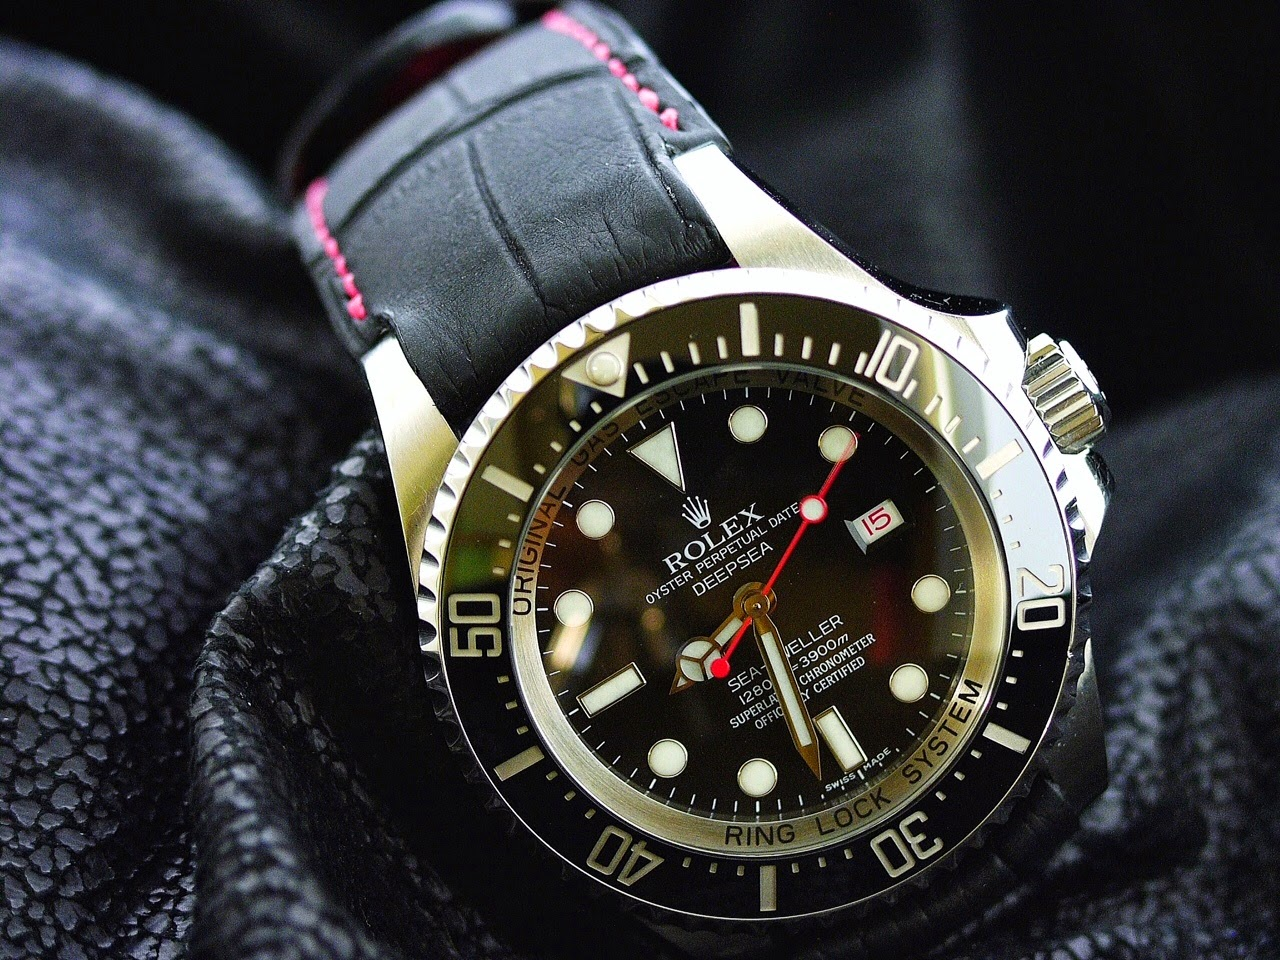 Wen's Custom Rolex Deep Sea on SuperMatte Alligator strap with Fully Integrated Fit (FIF)